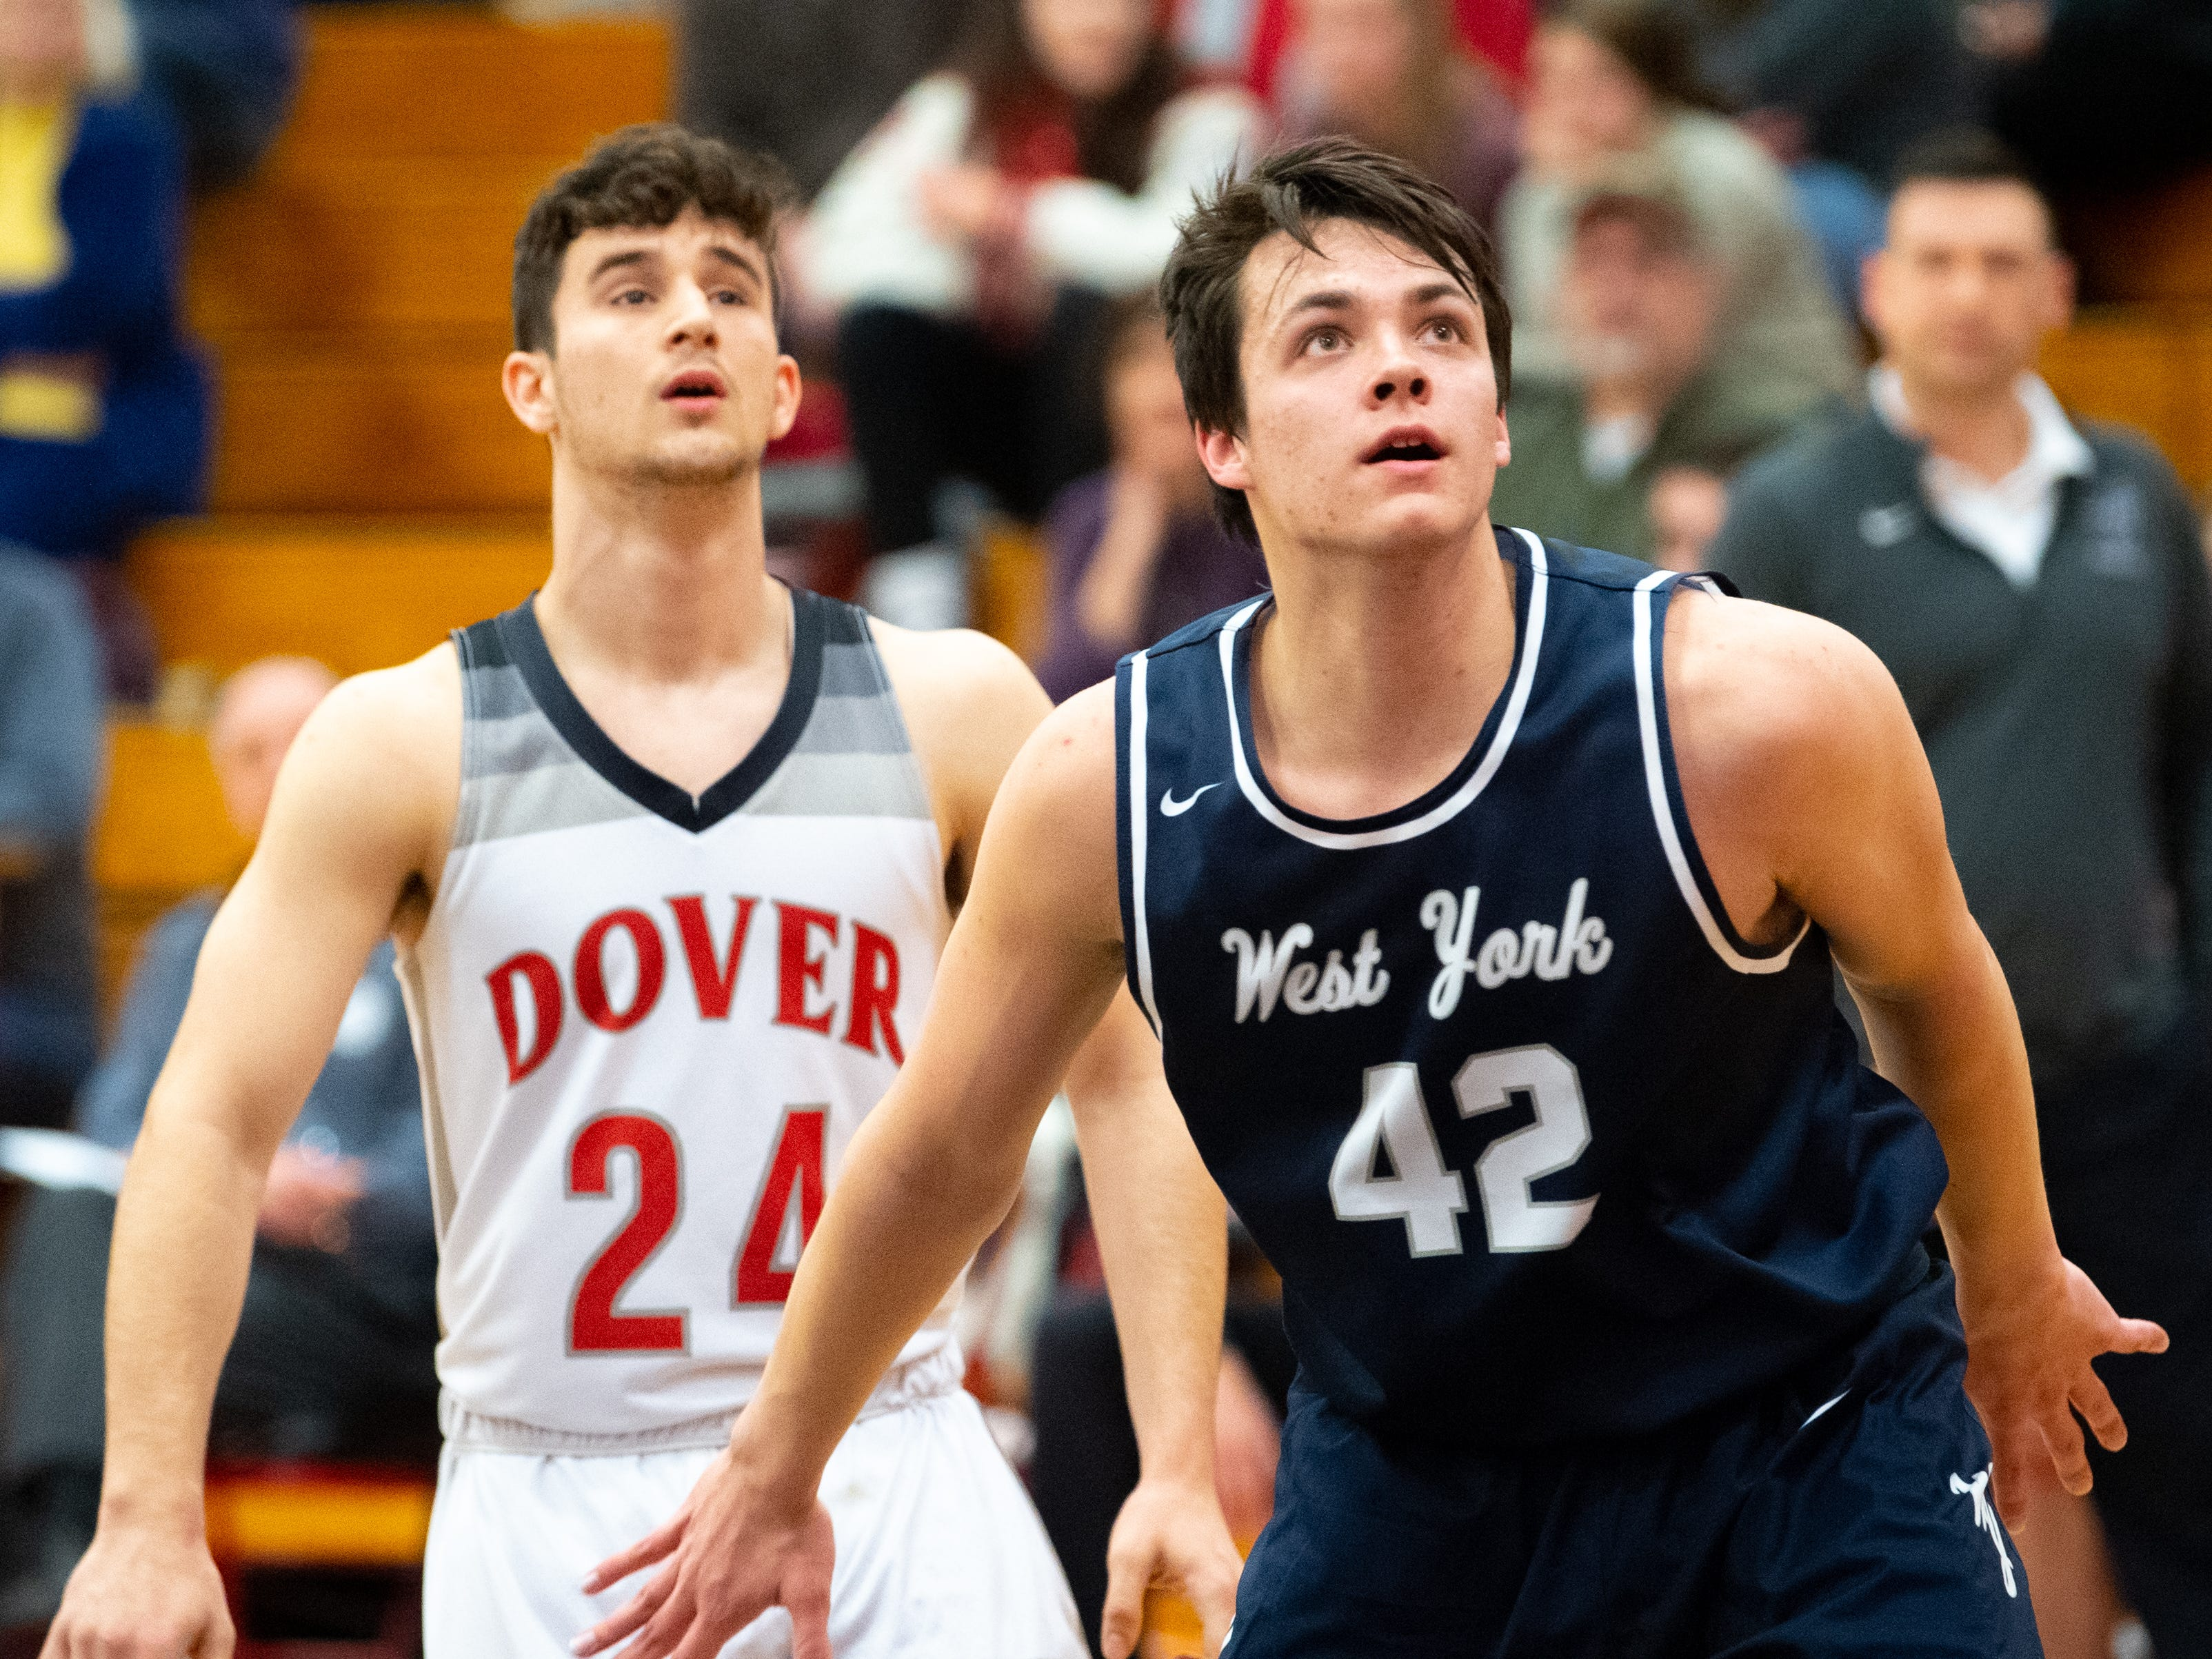 Gabe Mummert (42) boxes out Adam Jovicevic (24) during the boys' basketball game between Dover and West York, February 1, 2019 at Dover Area High School. The Eagles defeated the Bulldogs 65 to 58.